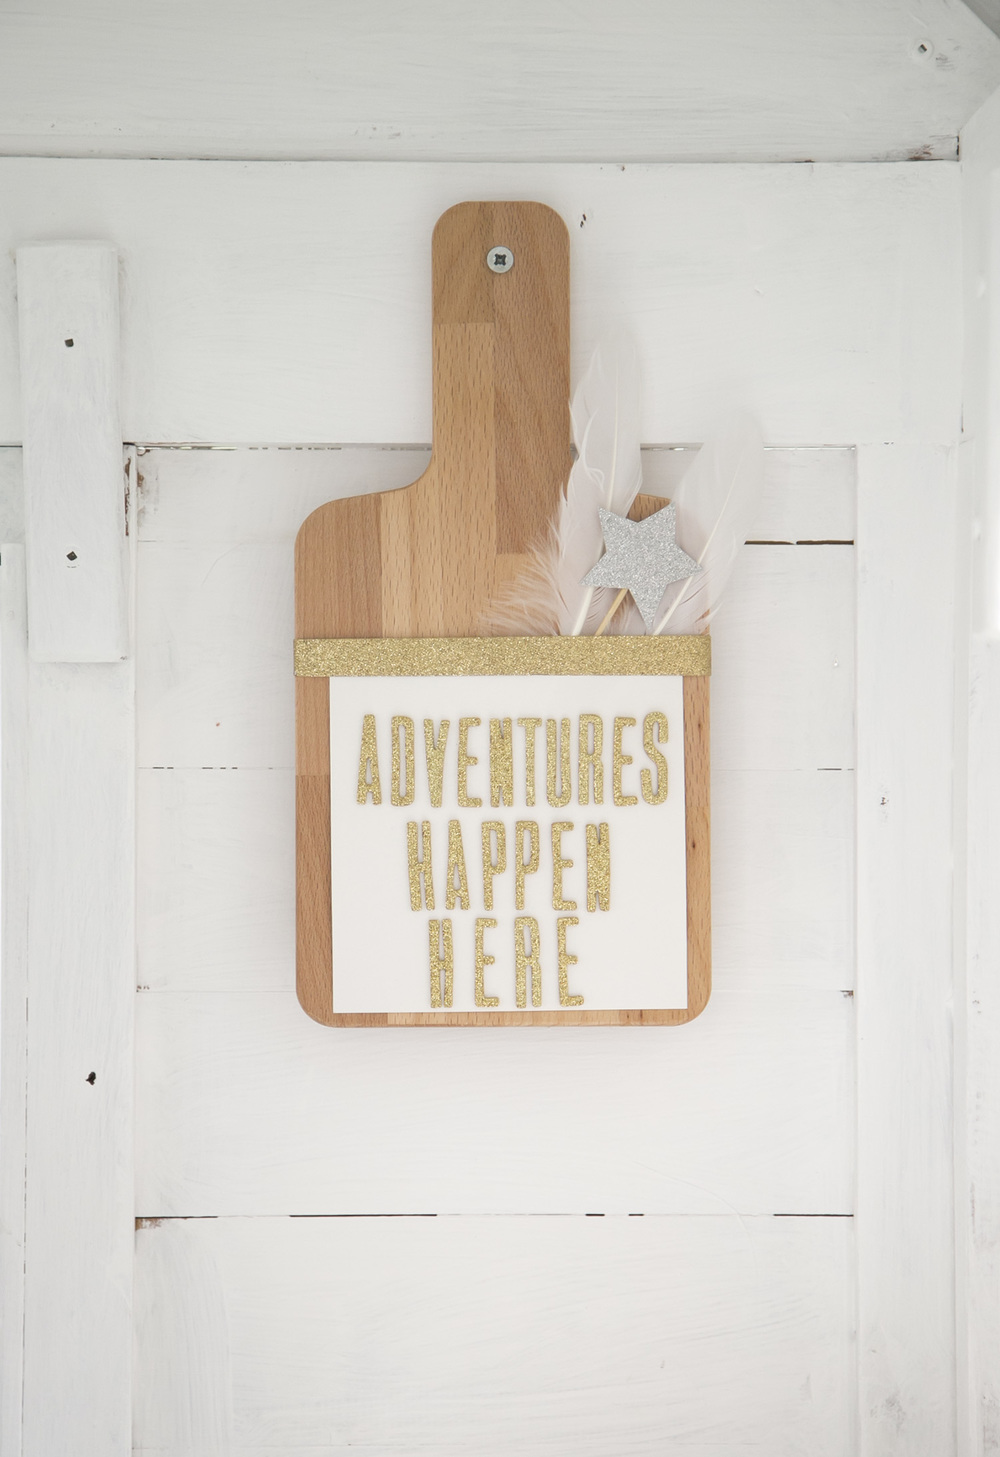 """adventures happen here"" sign"